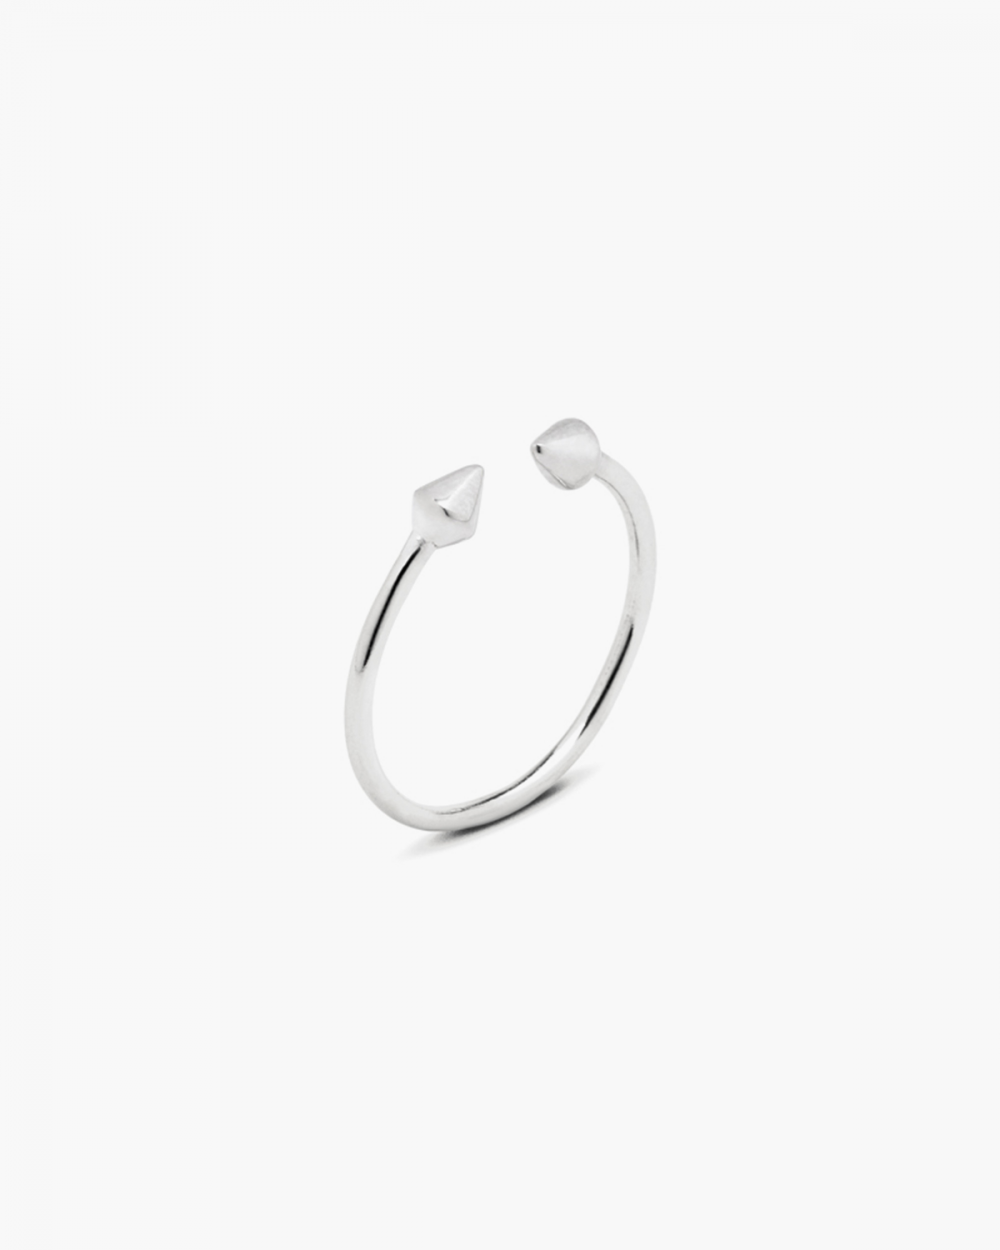 Rings CONES PIERCING RING NOVE25